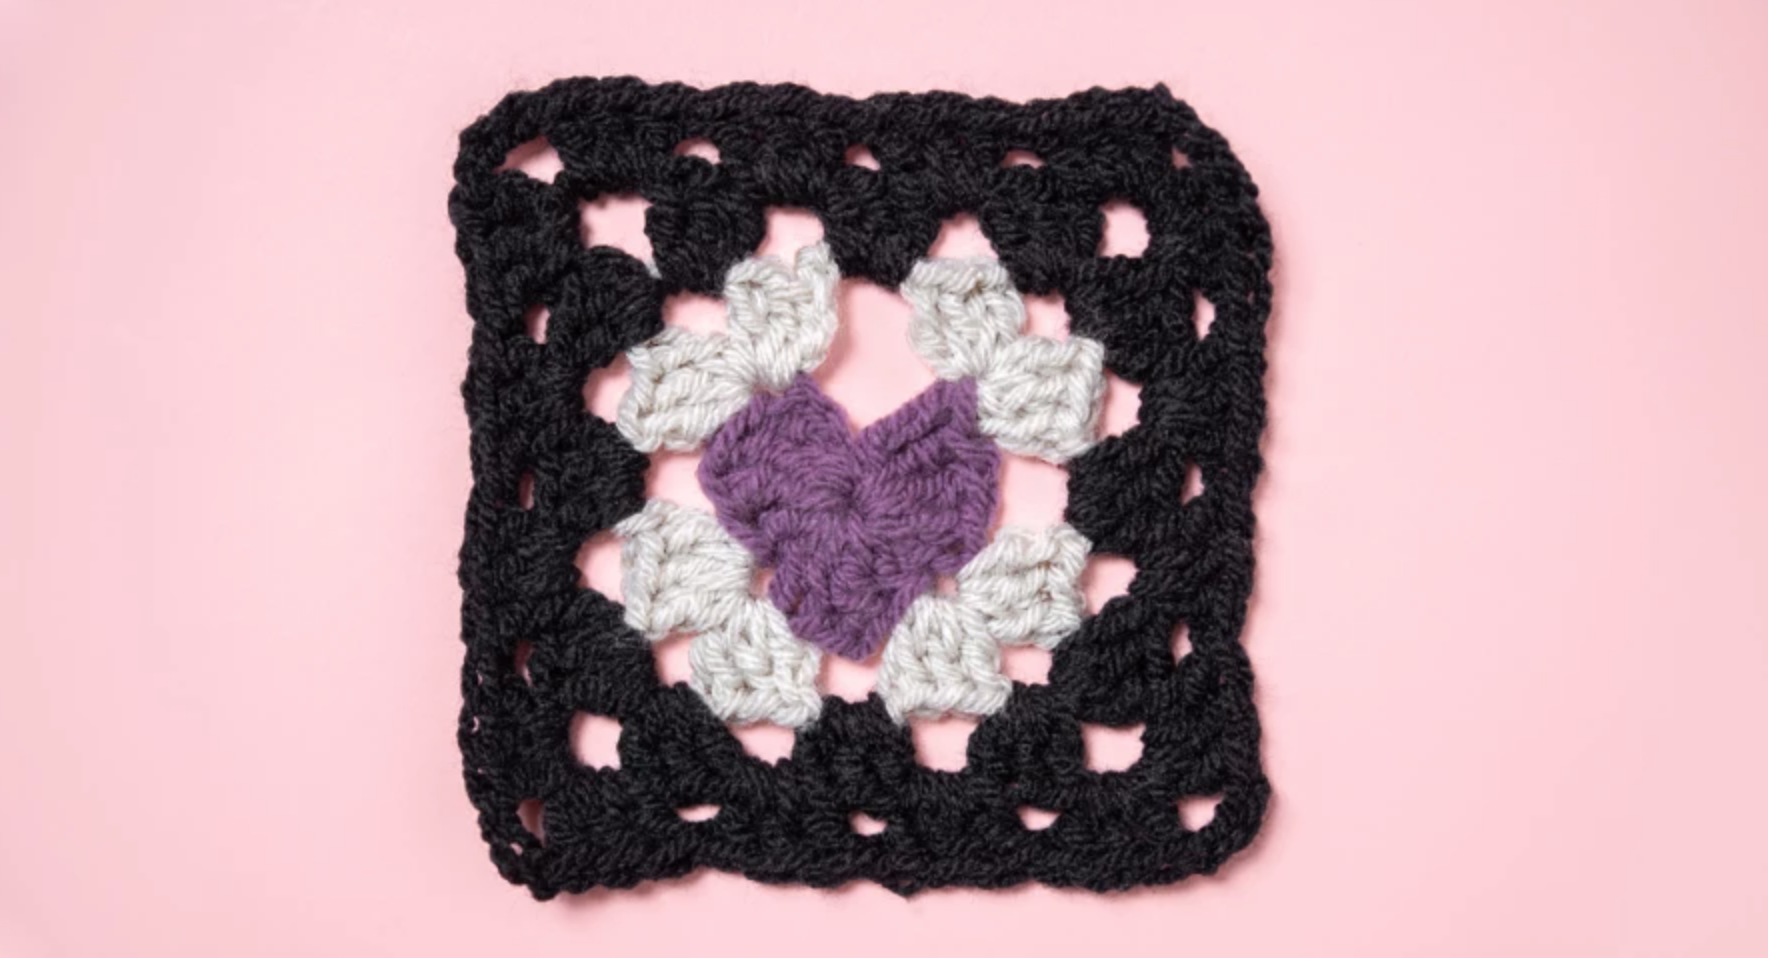 granny square with heart center